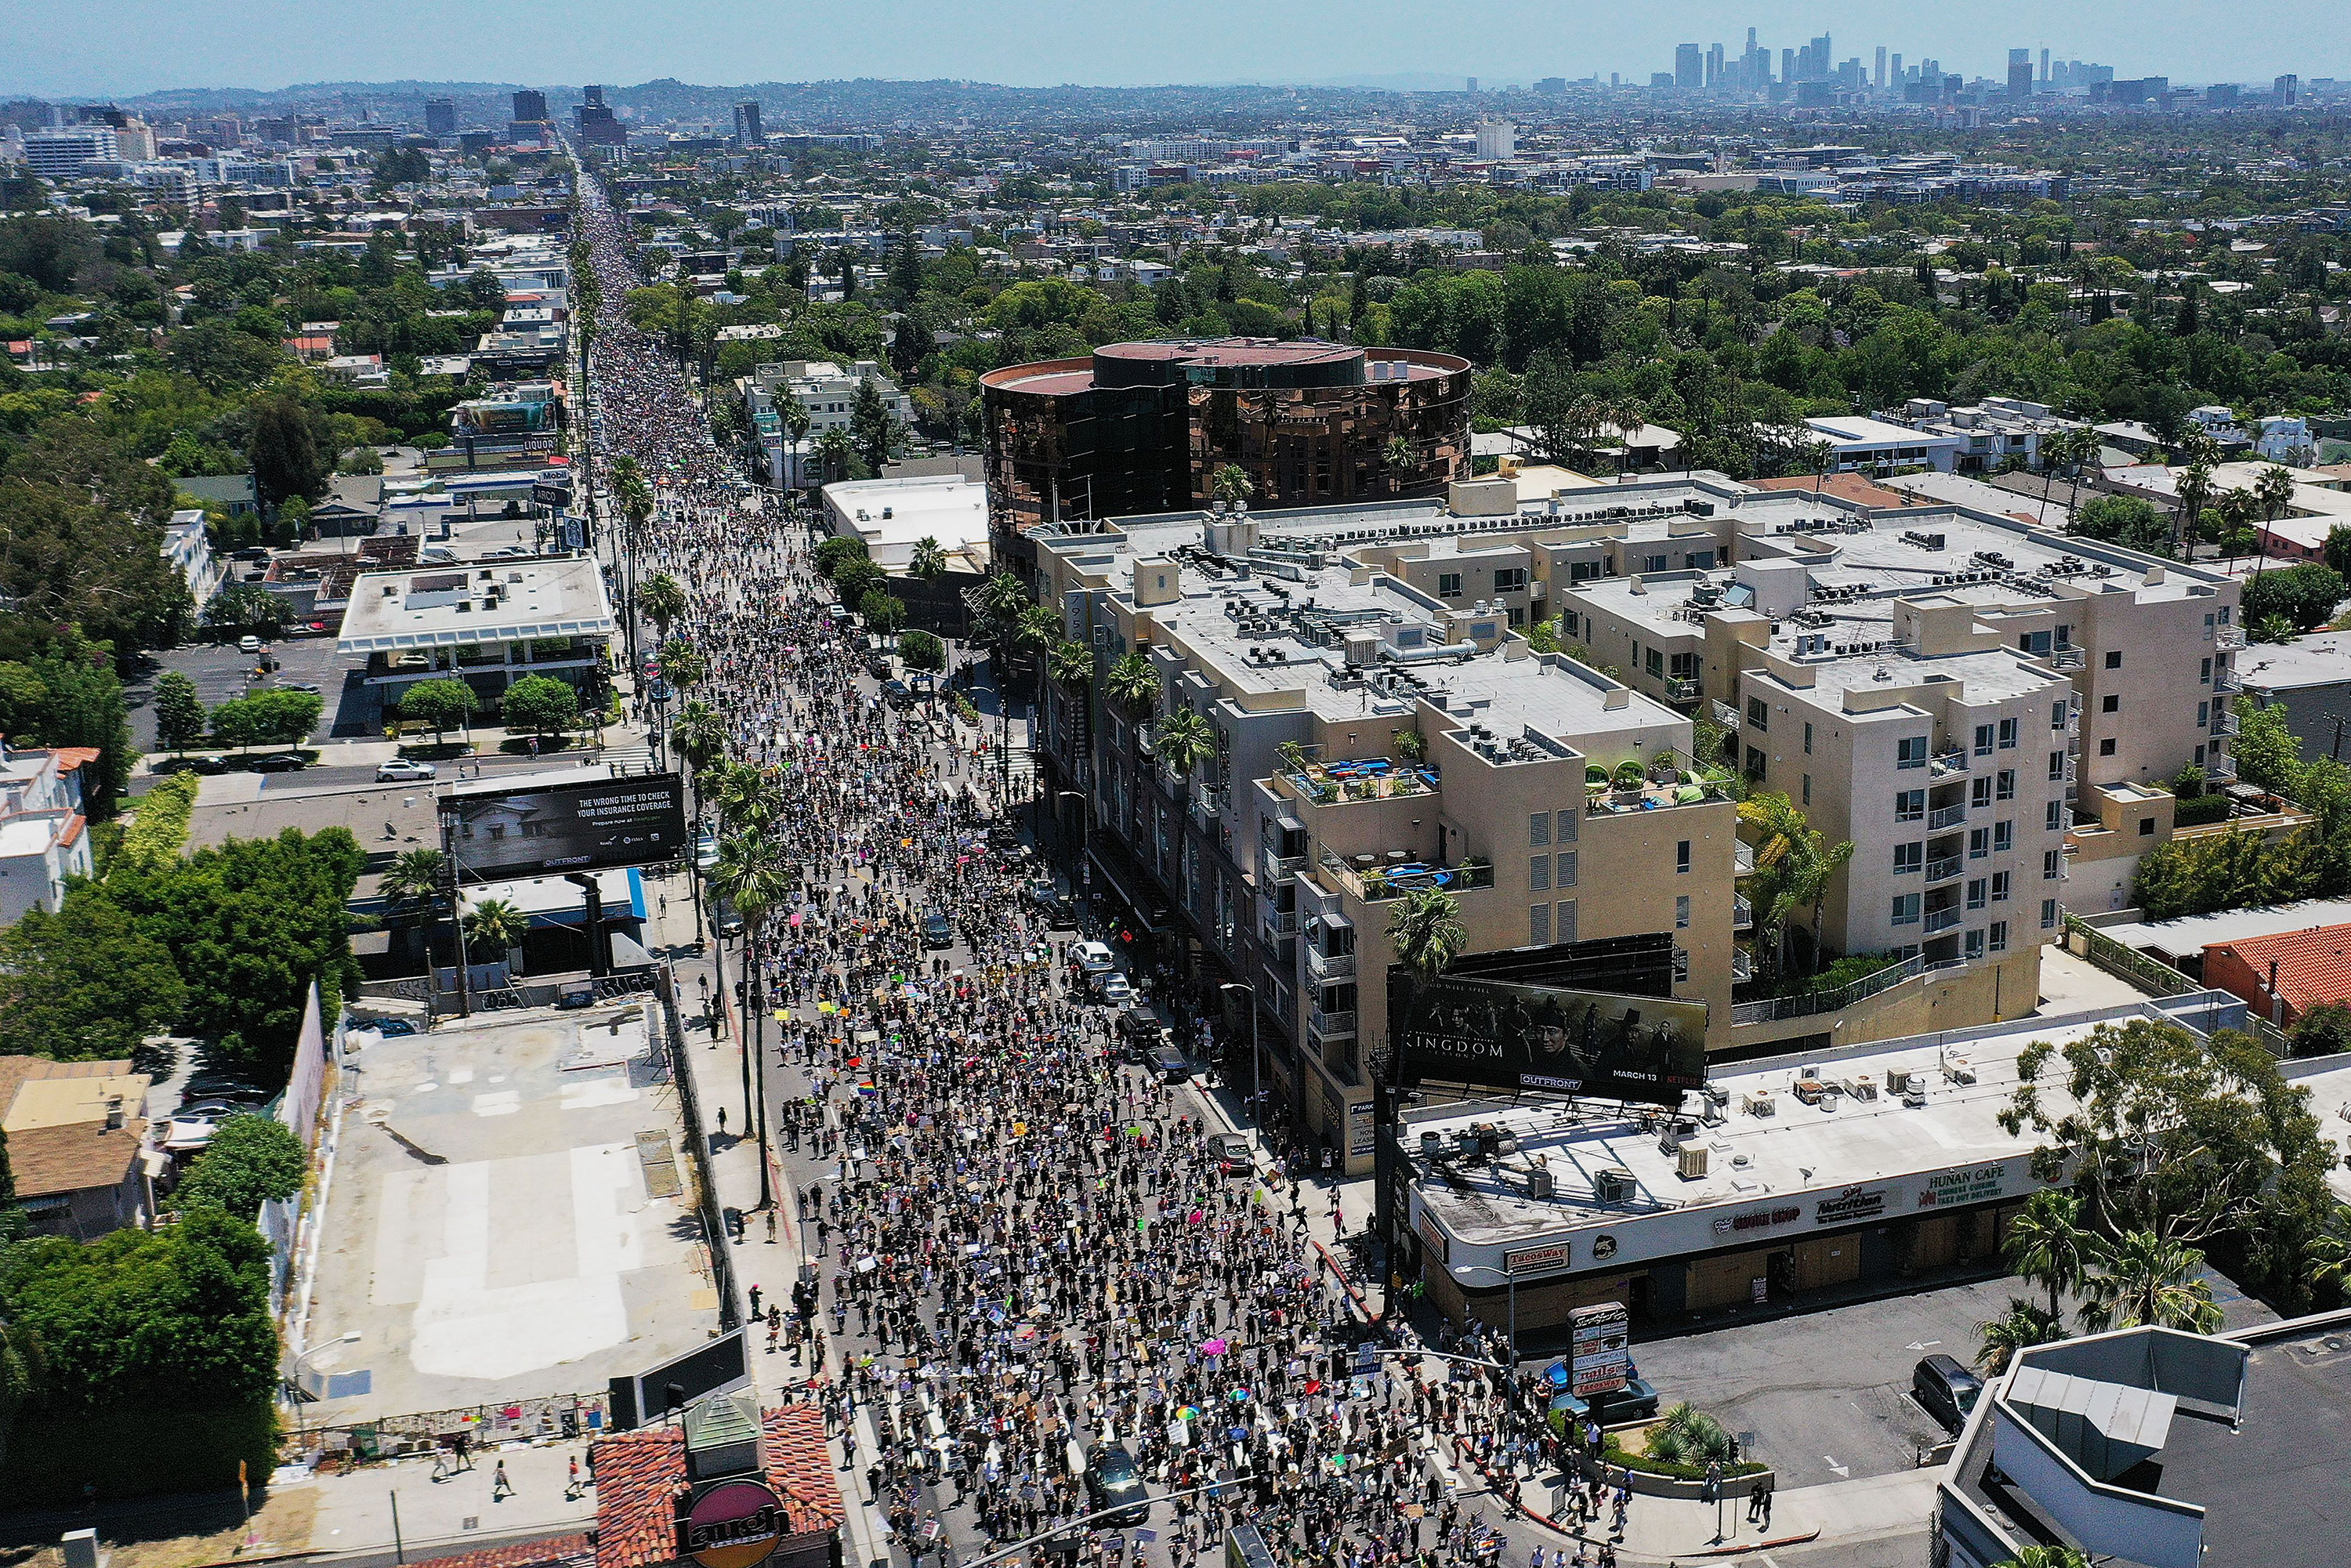 Protesters walk down Sunset Boulevard in Los Angeles, California, on June 14.